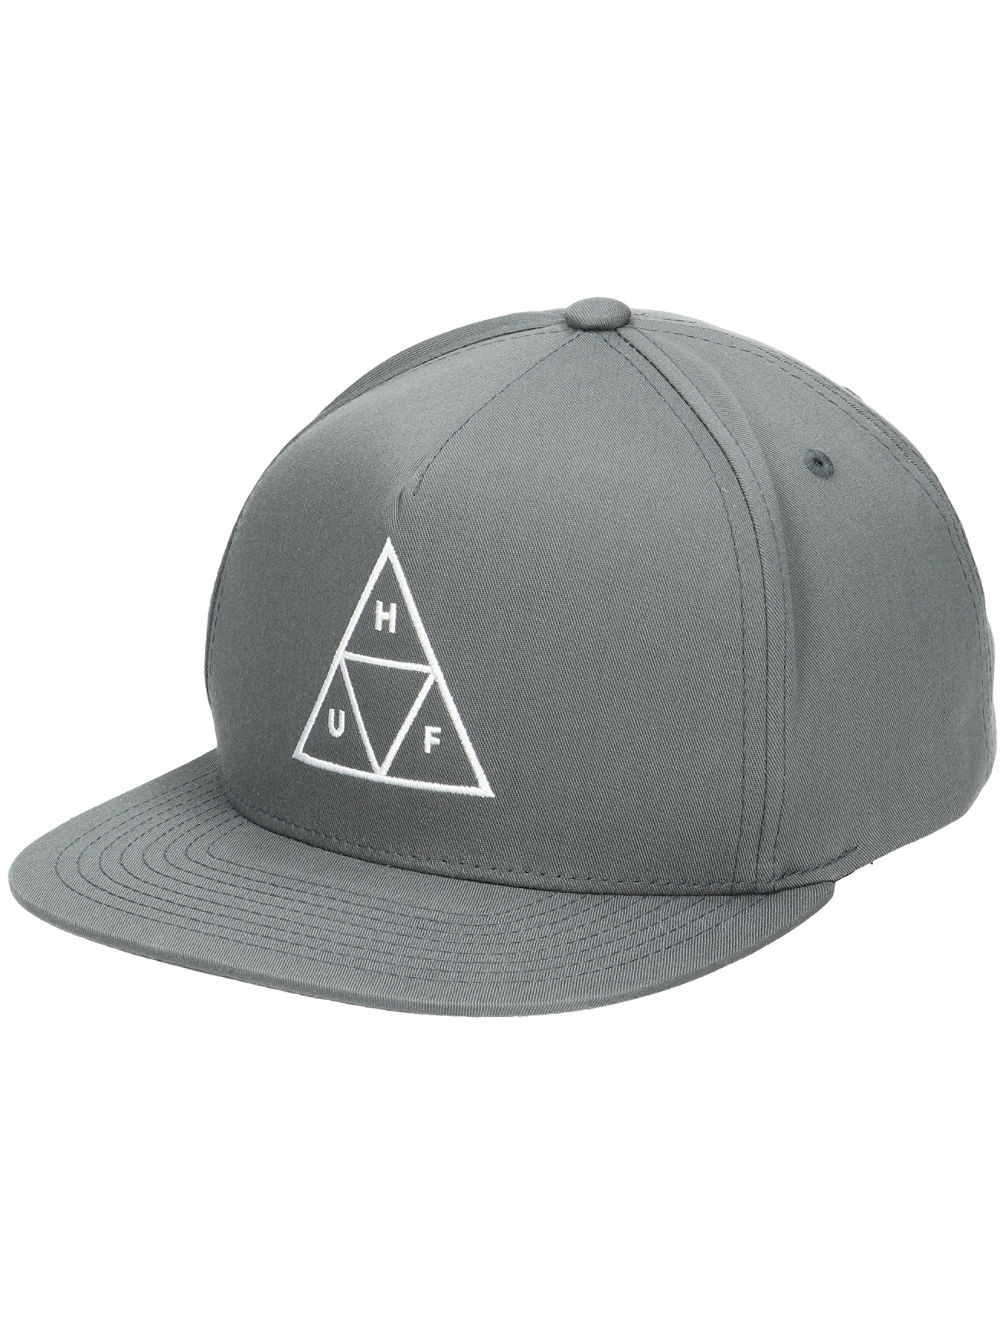 Triple Triangle Snapback Cap